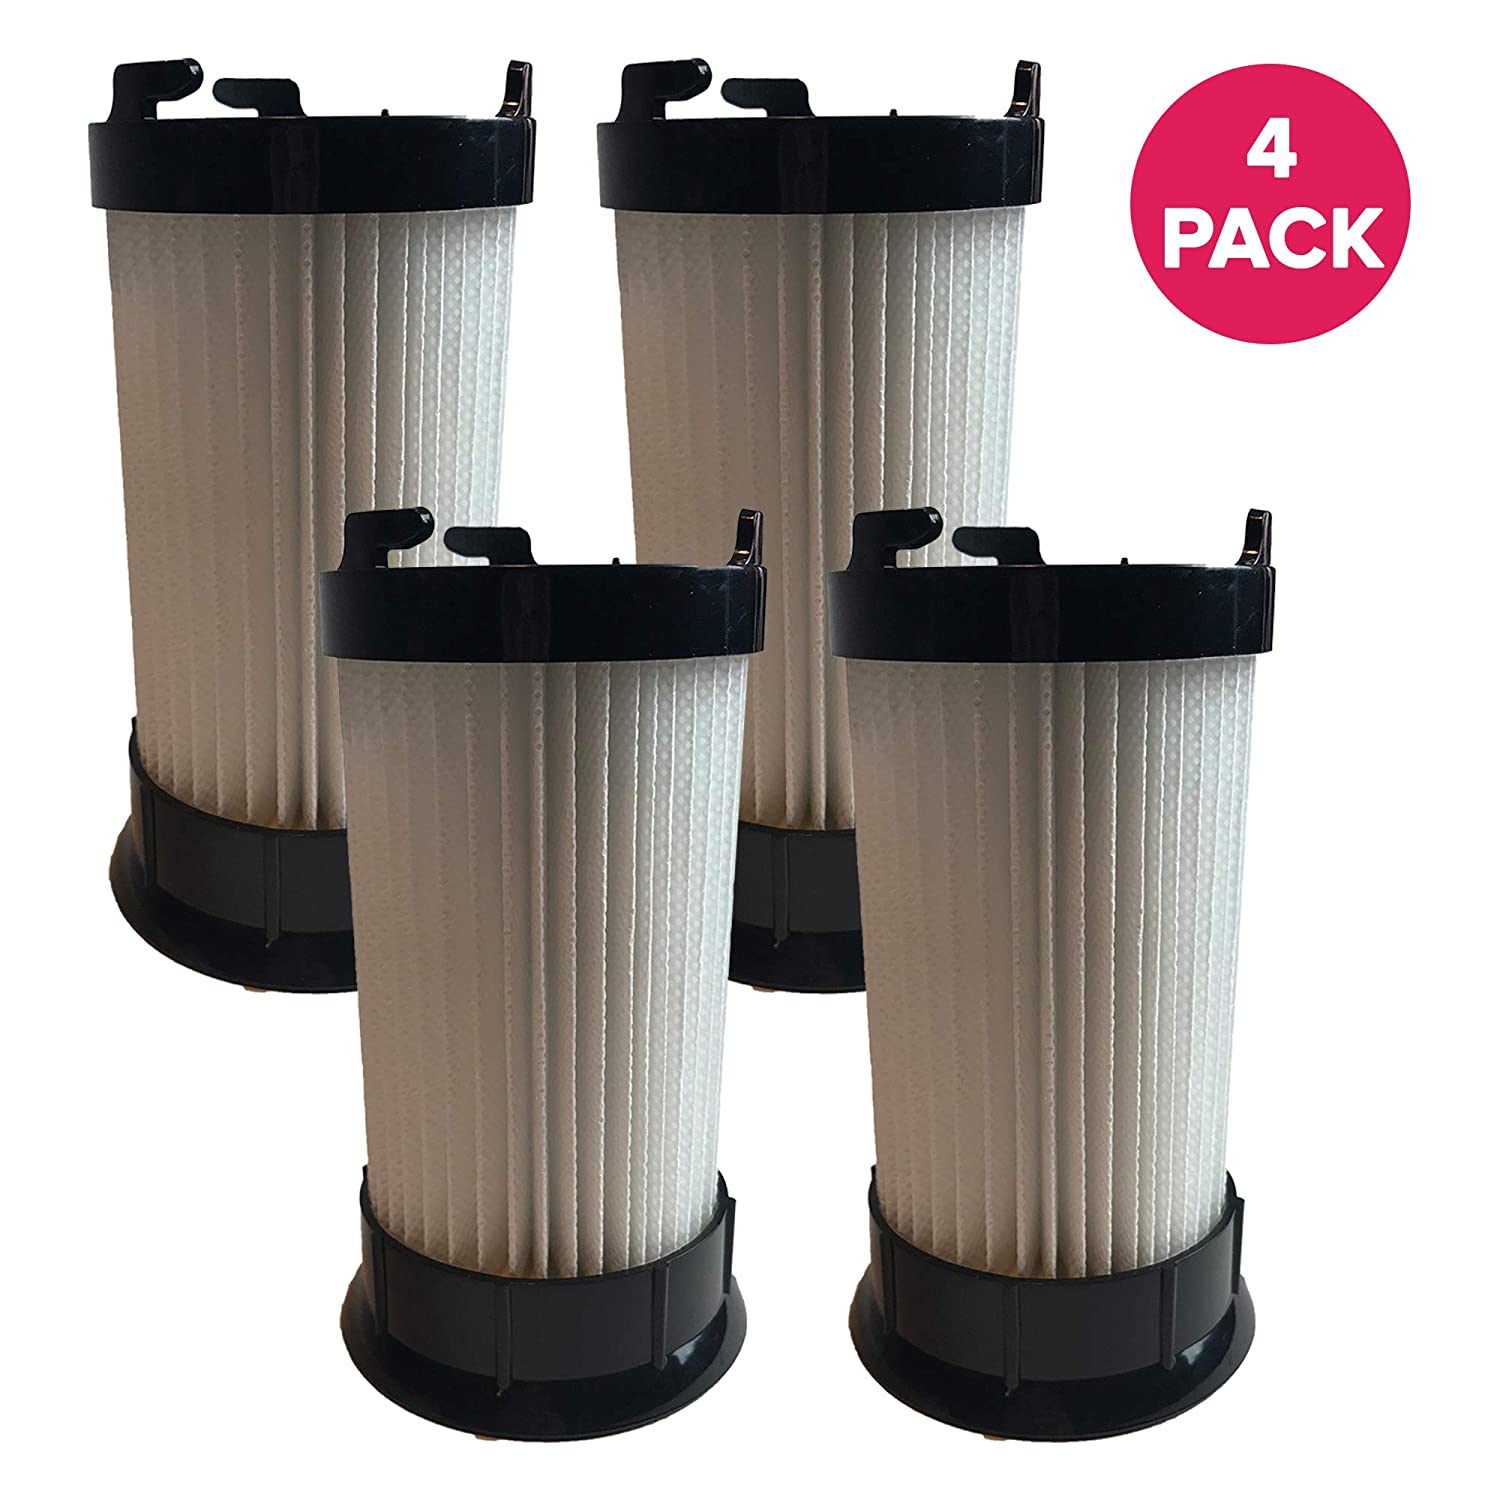 Think Crucial 4 Replacement for Eureka DCF-1, DCF-4 & DCF-18 Filter Fits 4700 & 5500 Series, Compatible With Part # 62132, 63073, 61770, 3690 & 28608-1